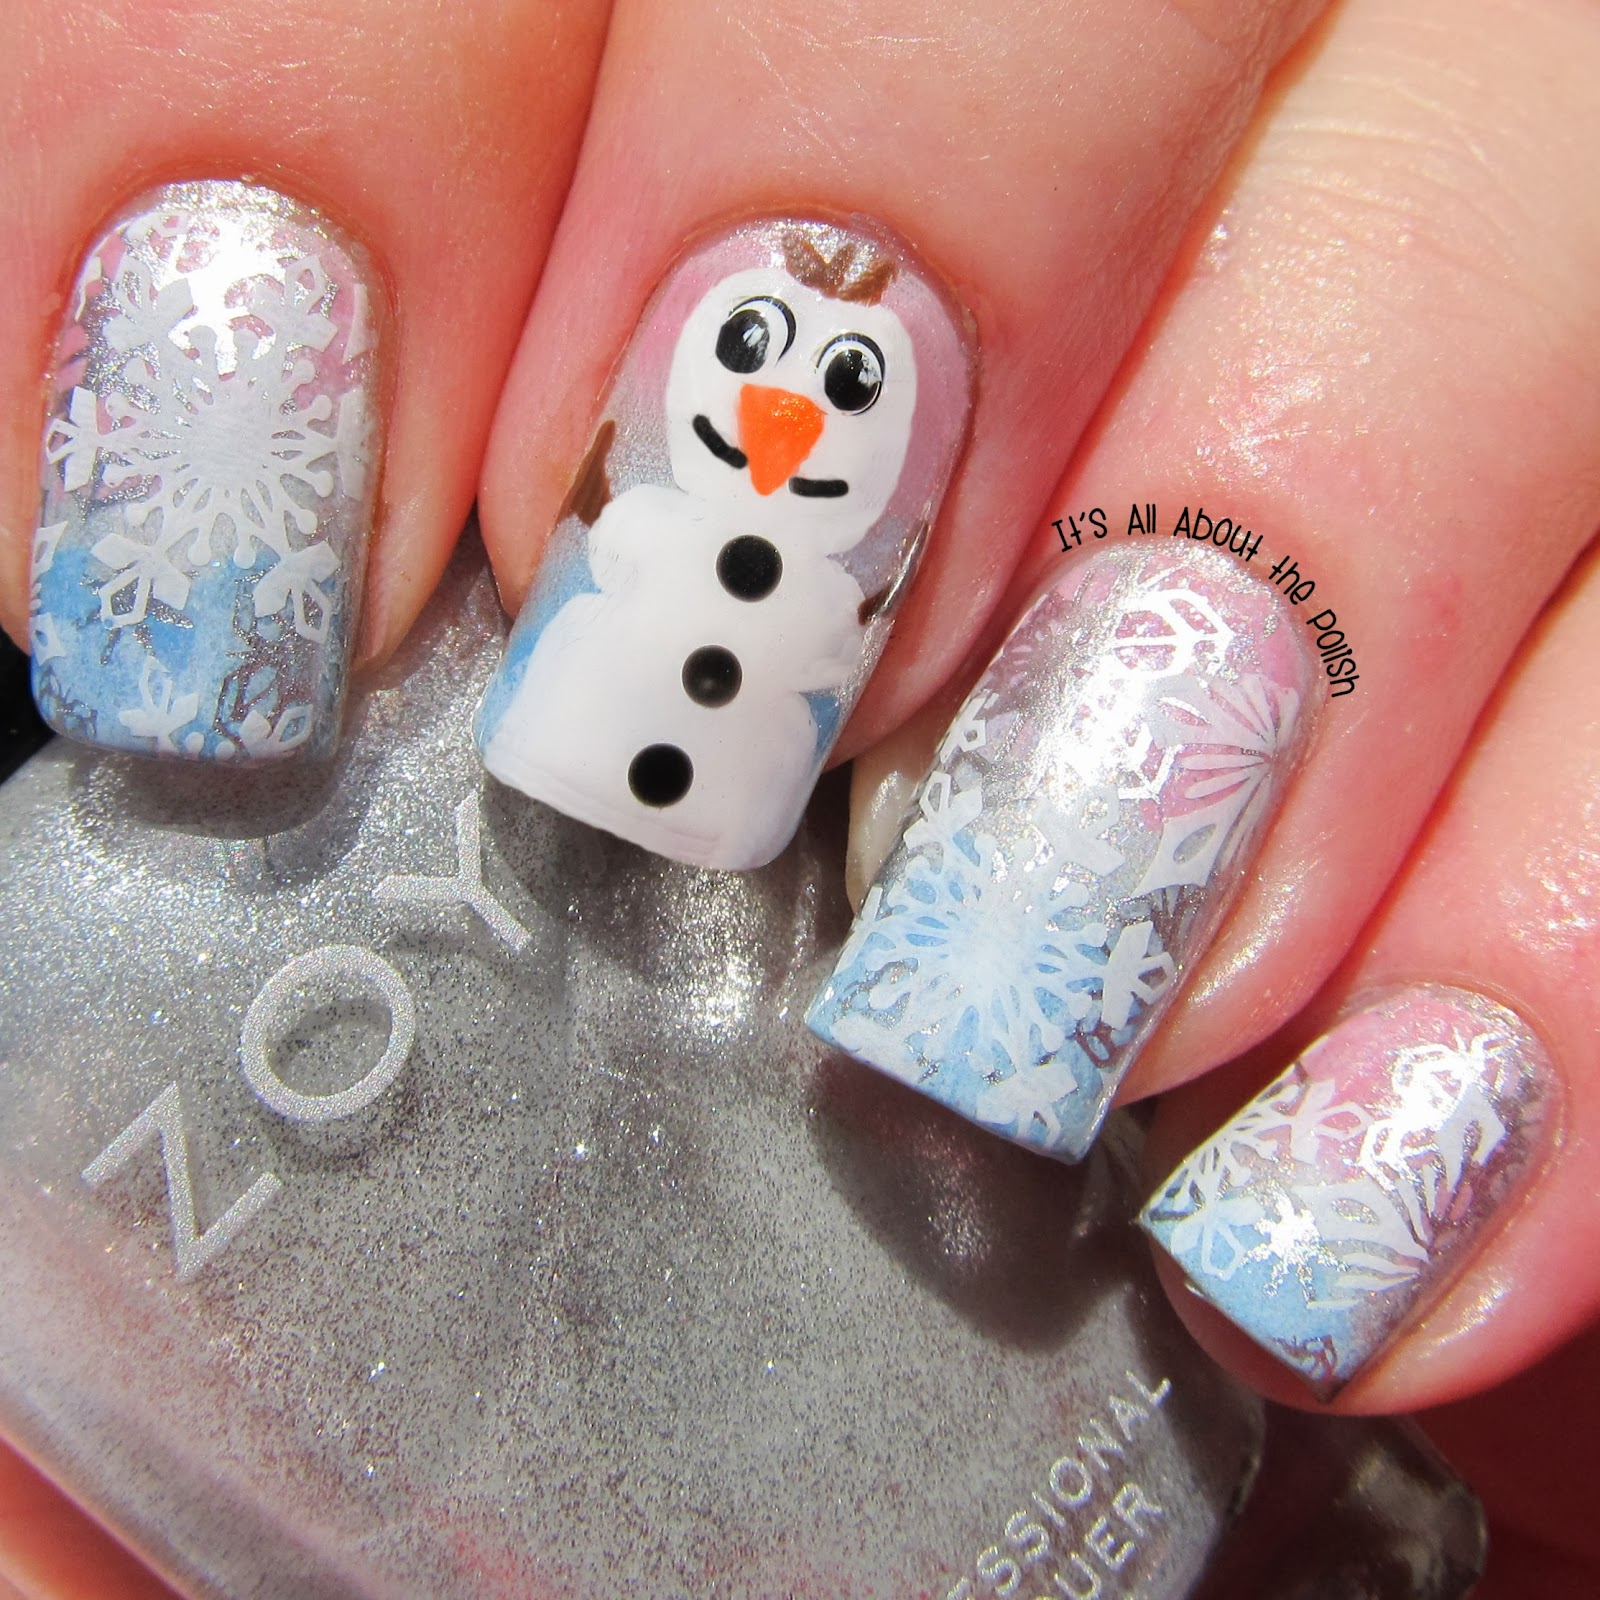 It's all about the polish: Frozen from Disney nail art - Olaf